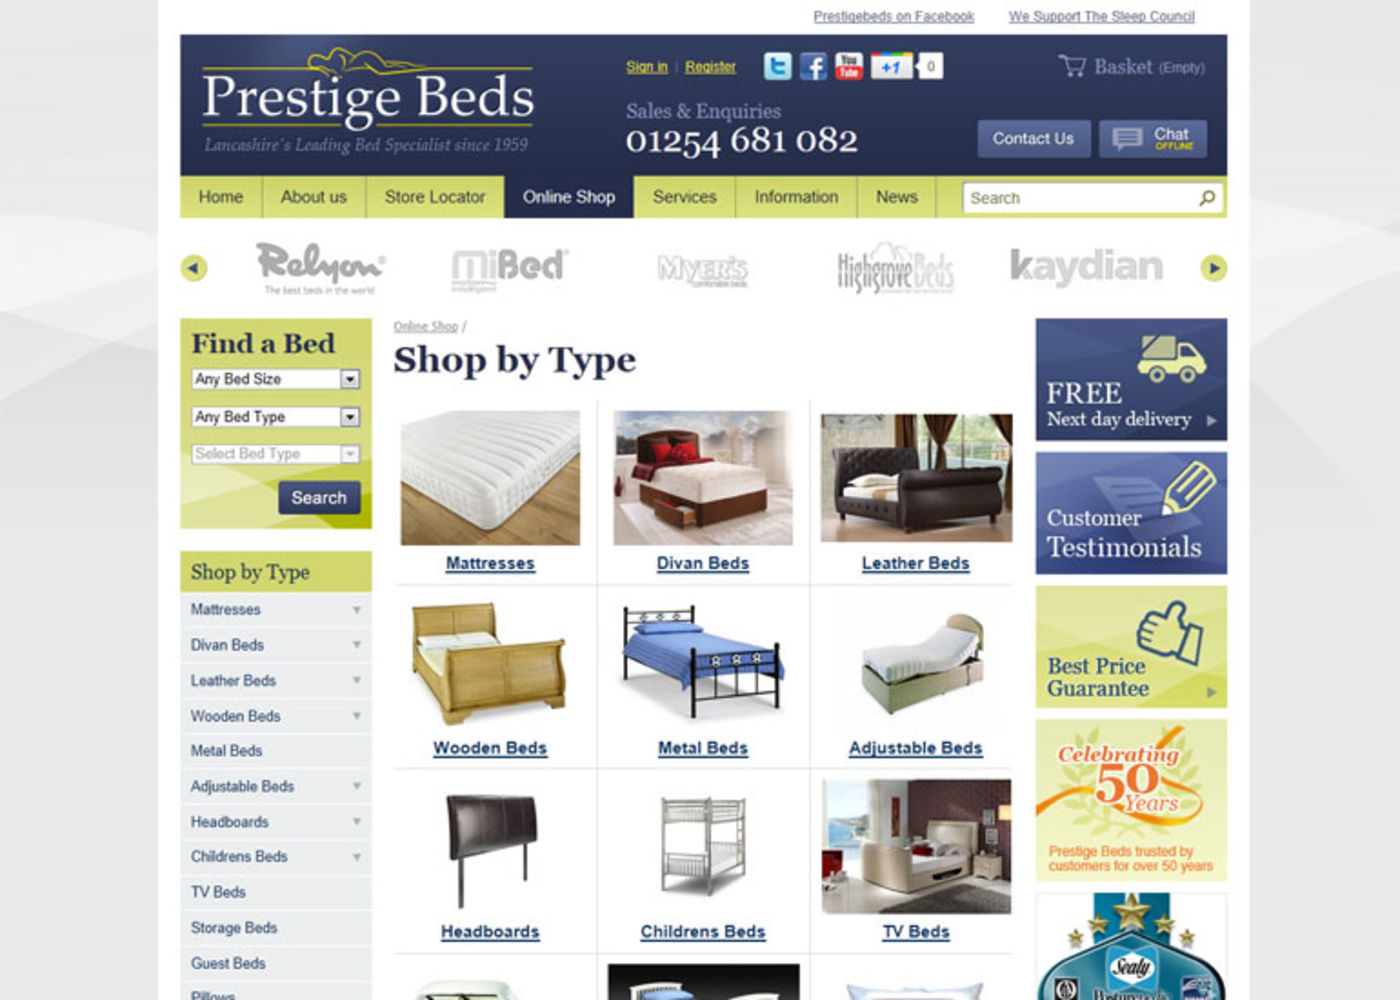 Prestige Beds (2011) Shope by Type